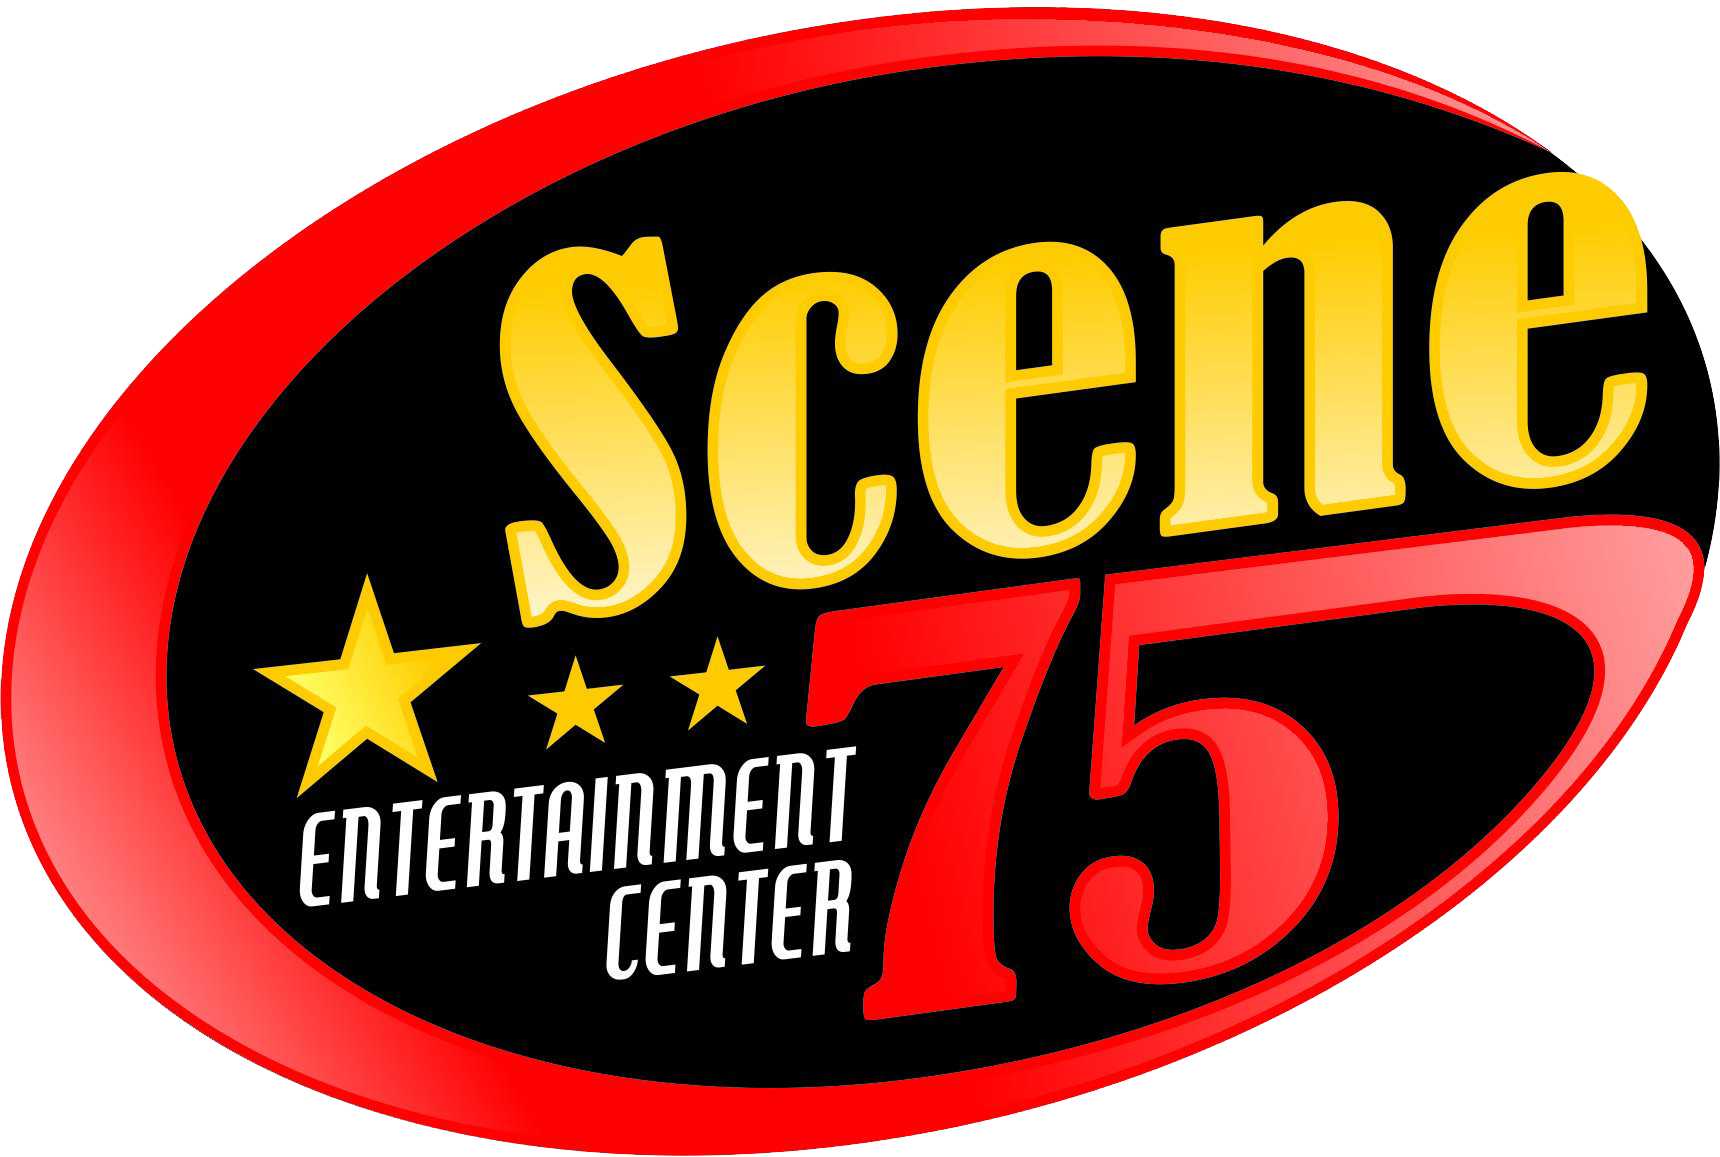 Scene75 Entertainment Center, Milford OH